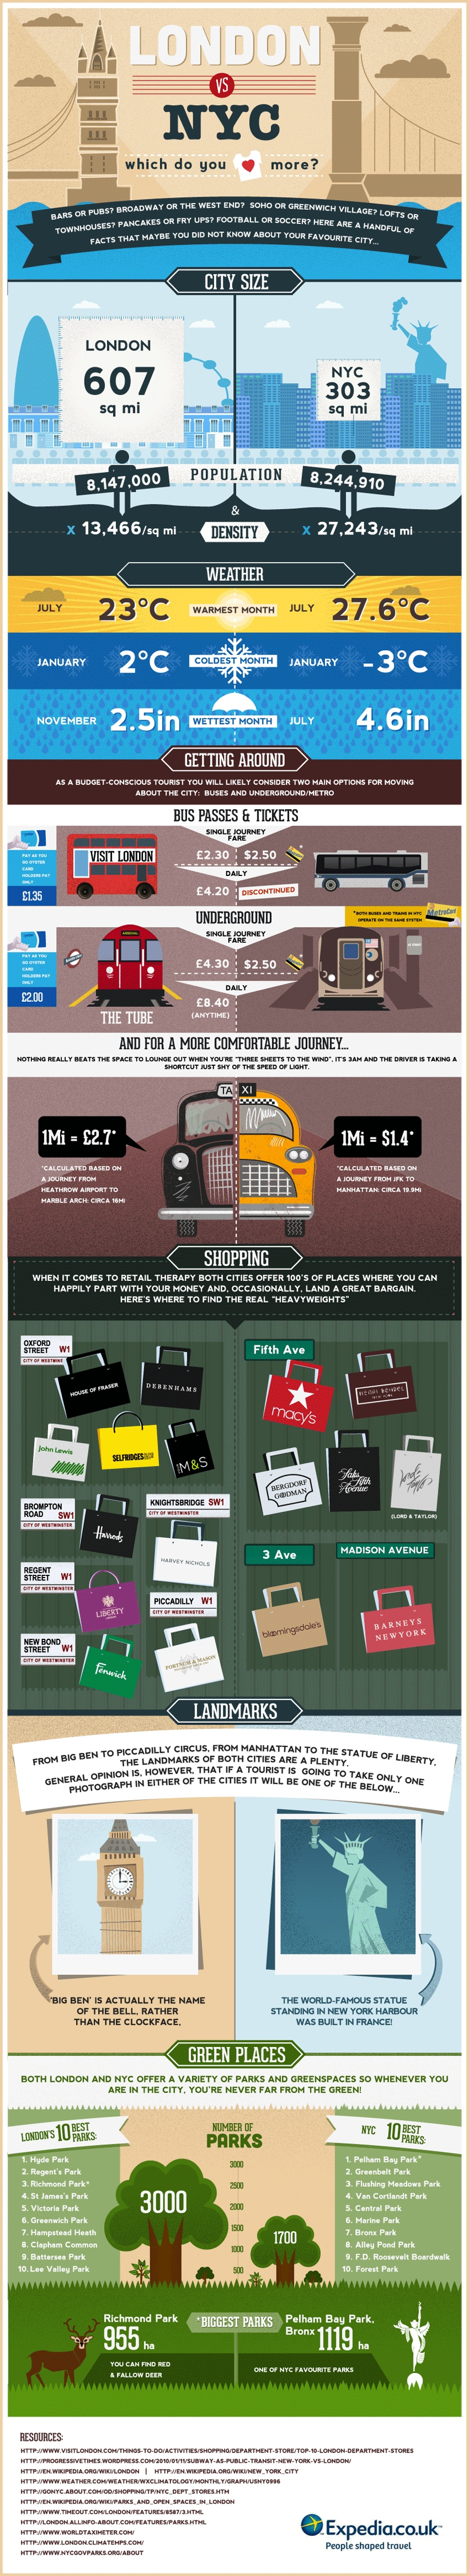 London or NYC - Expedia Infographic